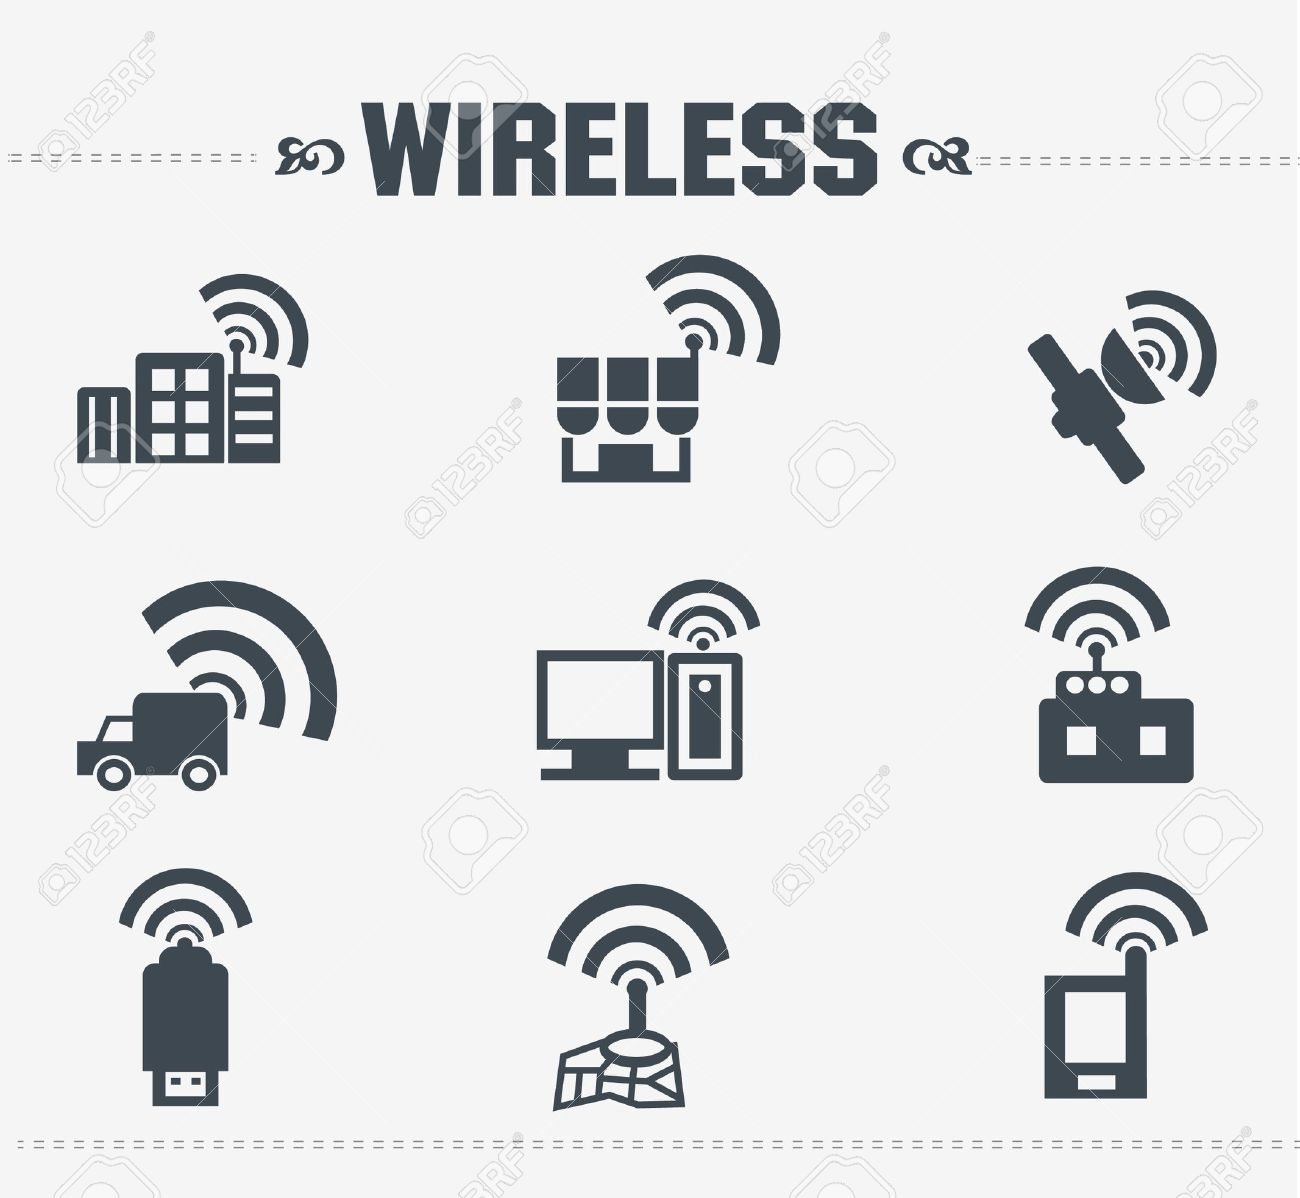 Wireless Communication Icon Set Royalty Free Cliparts, Vectors ...